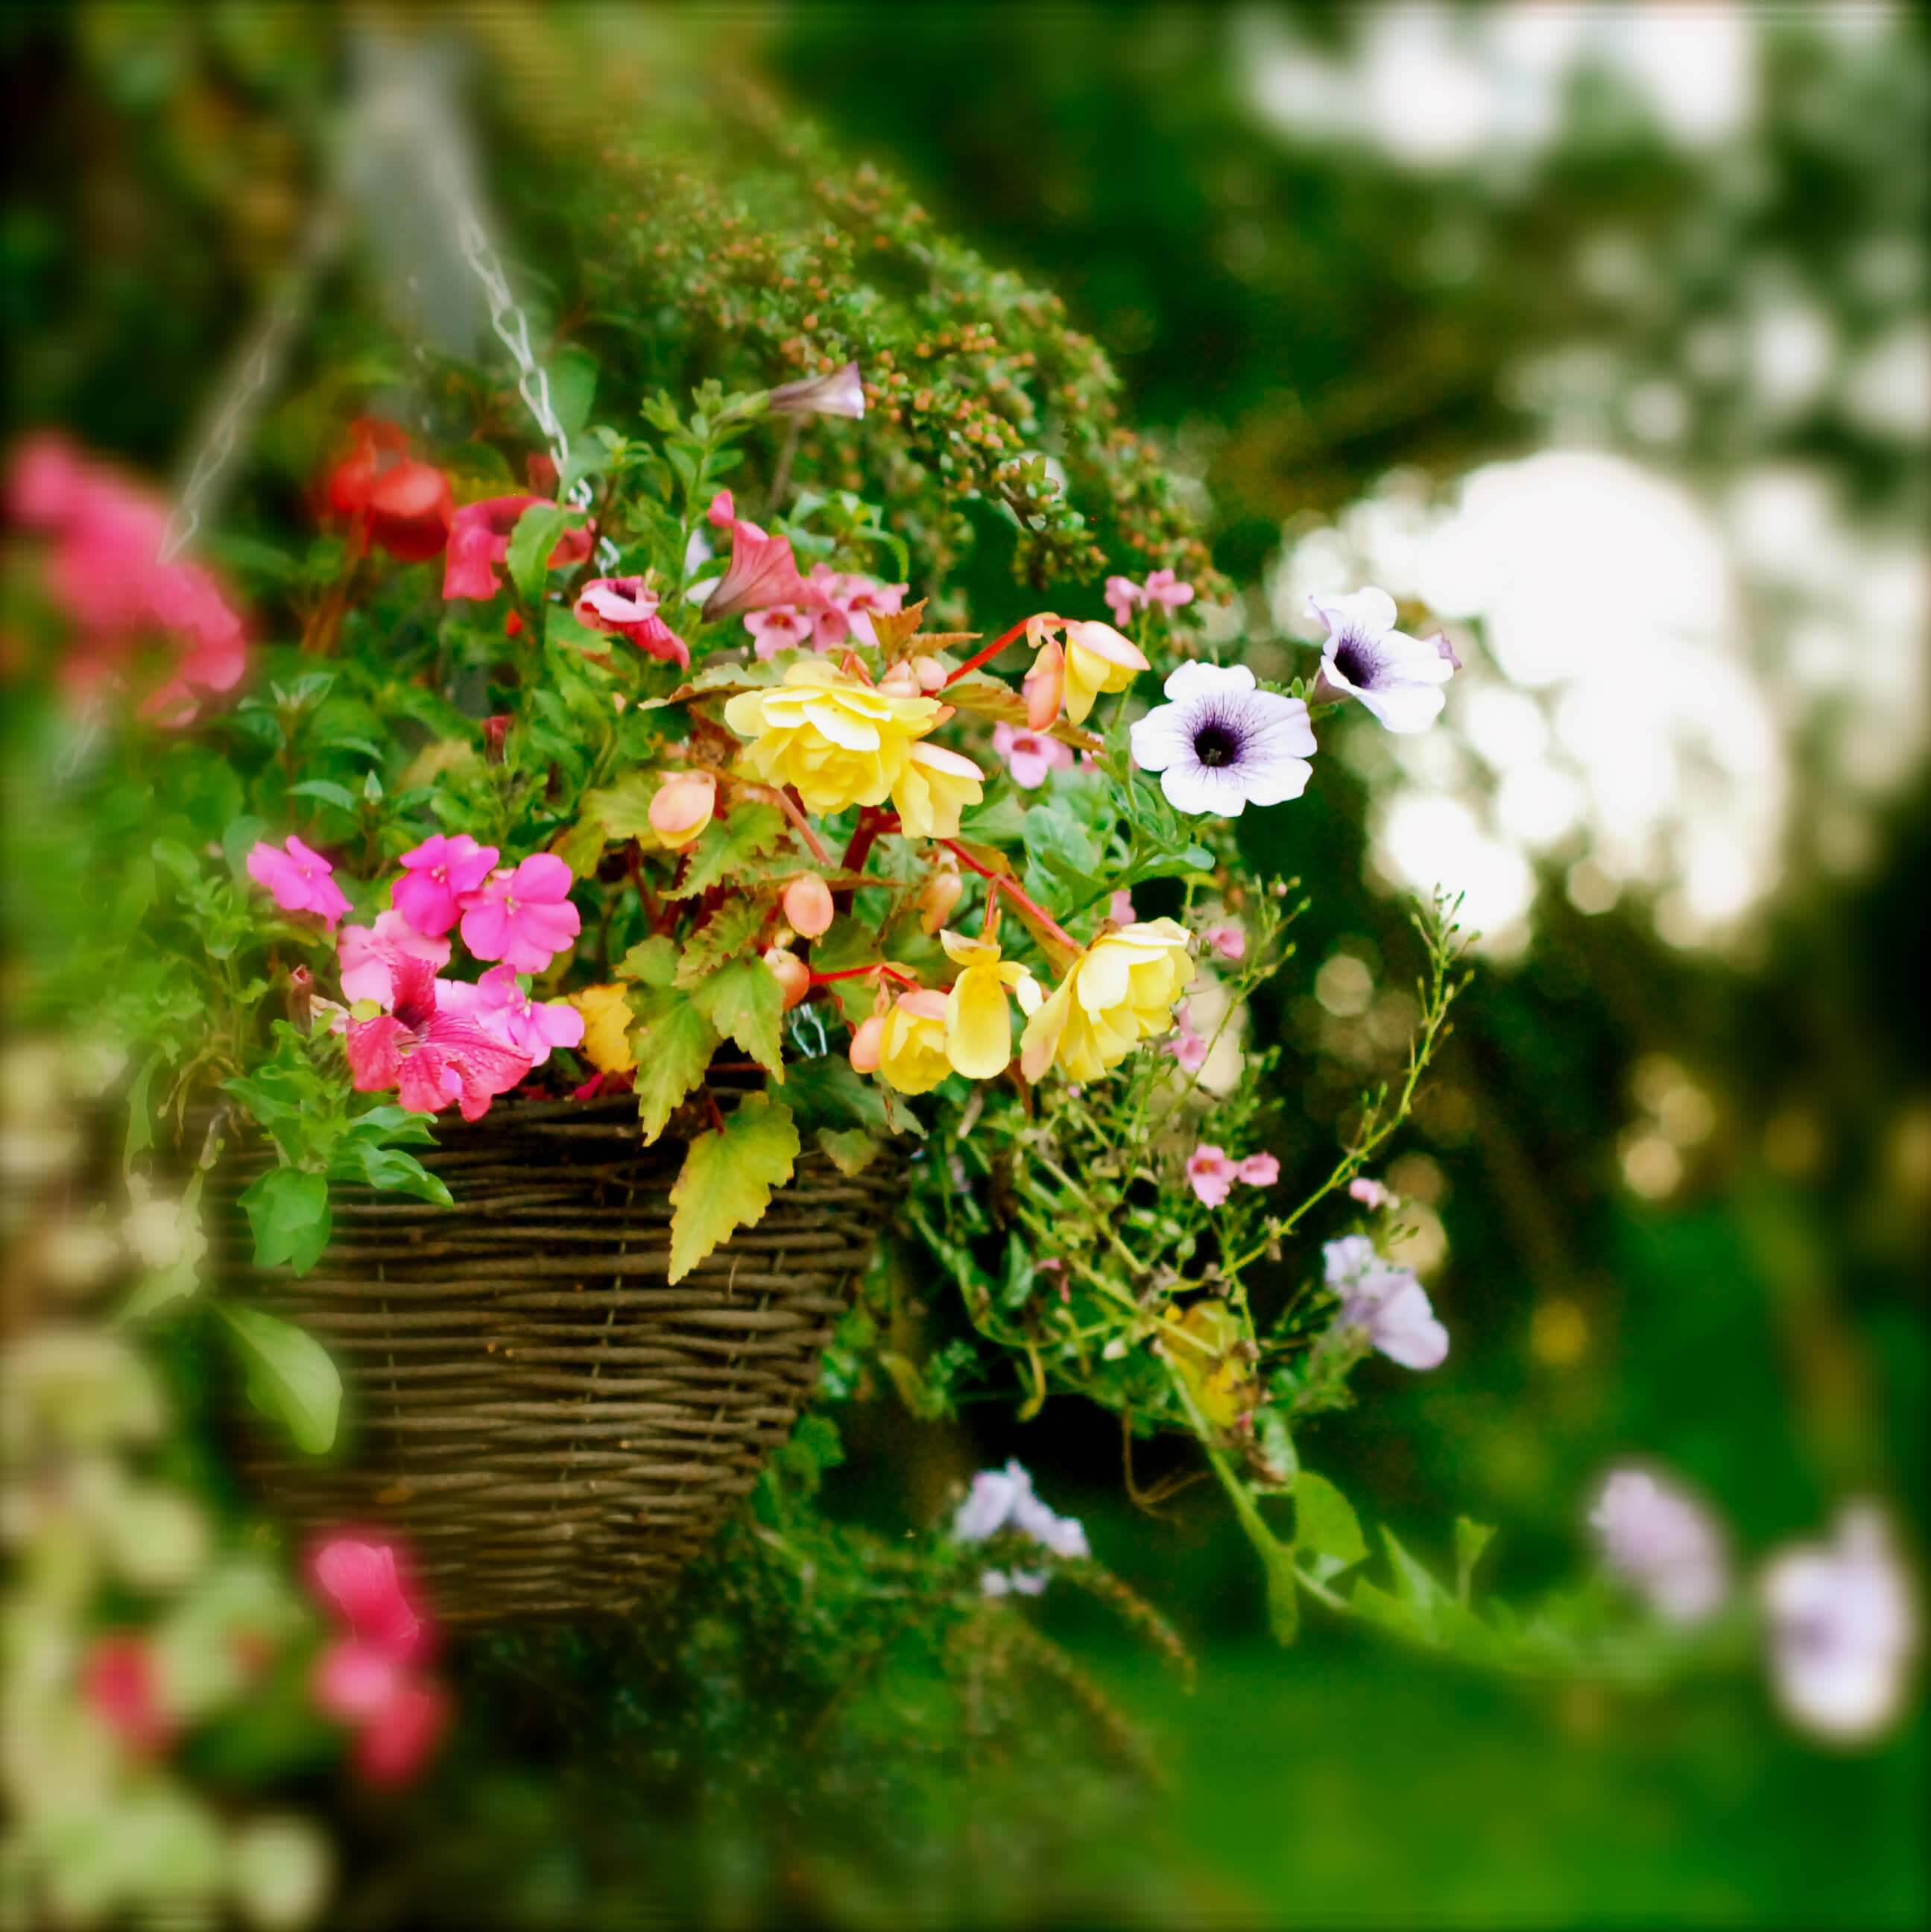 Beautify the front view of your house with hanging flower baskets